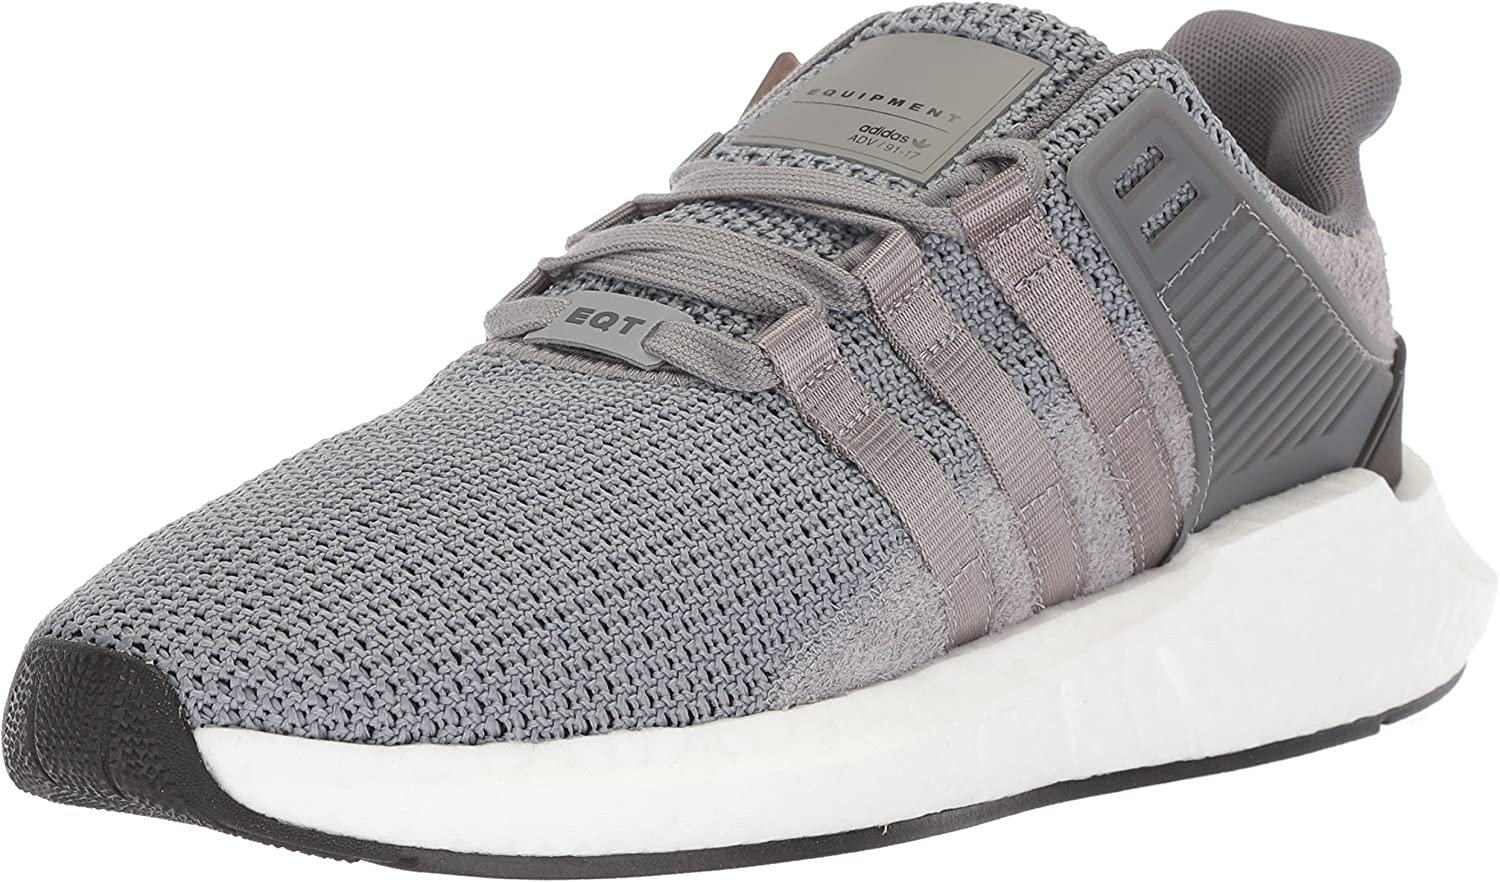 adidas Originals Men s EQT Support 93 17 Running Shoe, Grey Grey White, 11 M US